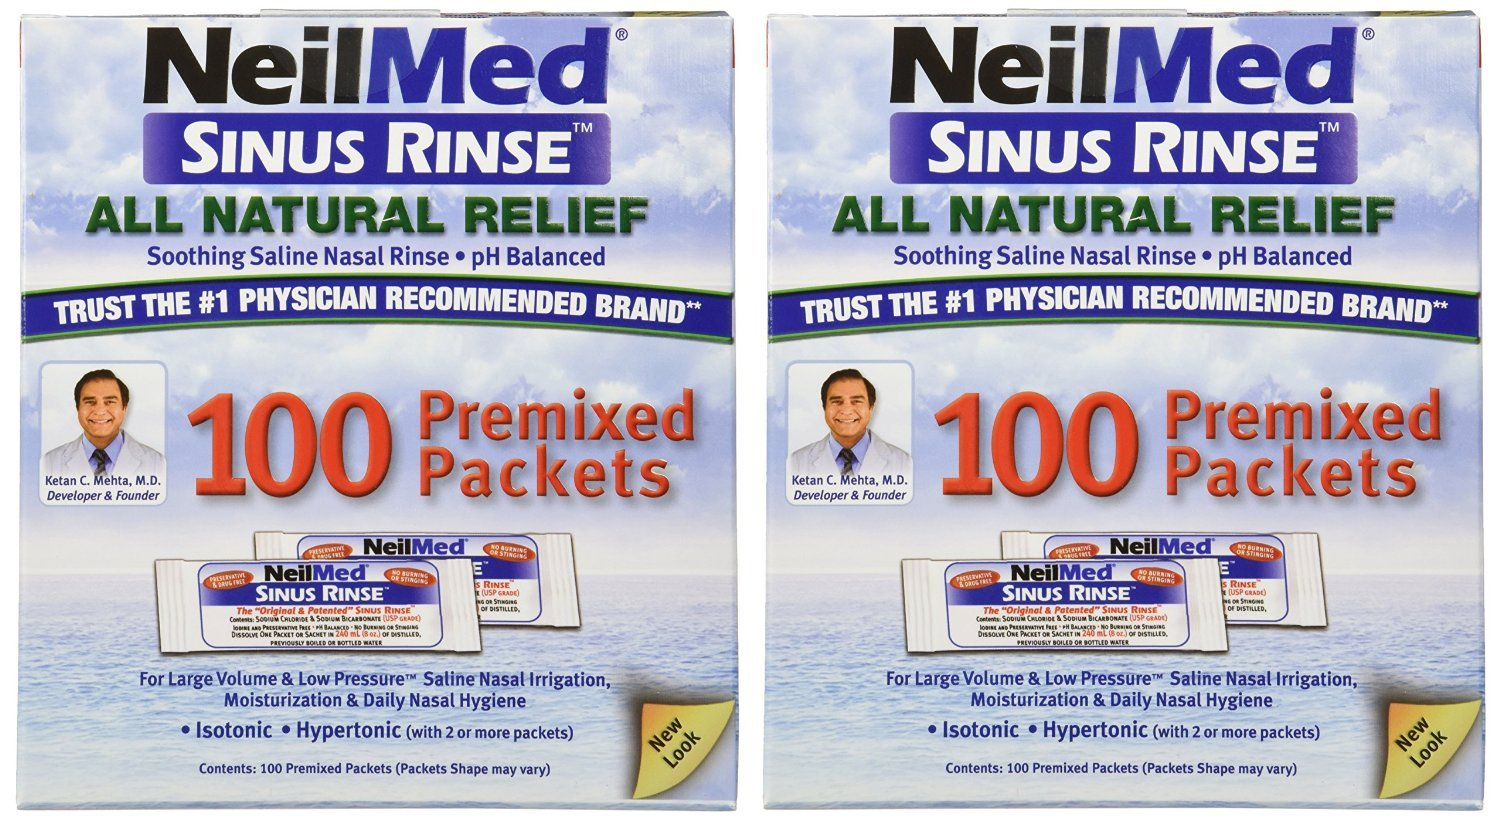 NeilMed Rinse Regular Mixture Packets for Allergies and Sinus, 200 Count (Pack of 10)